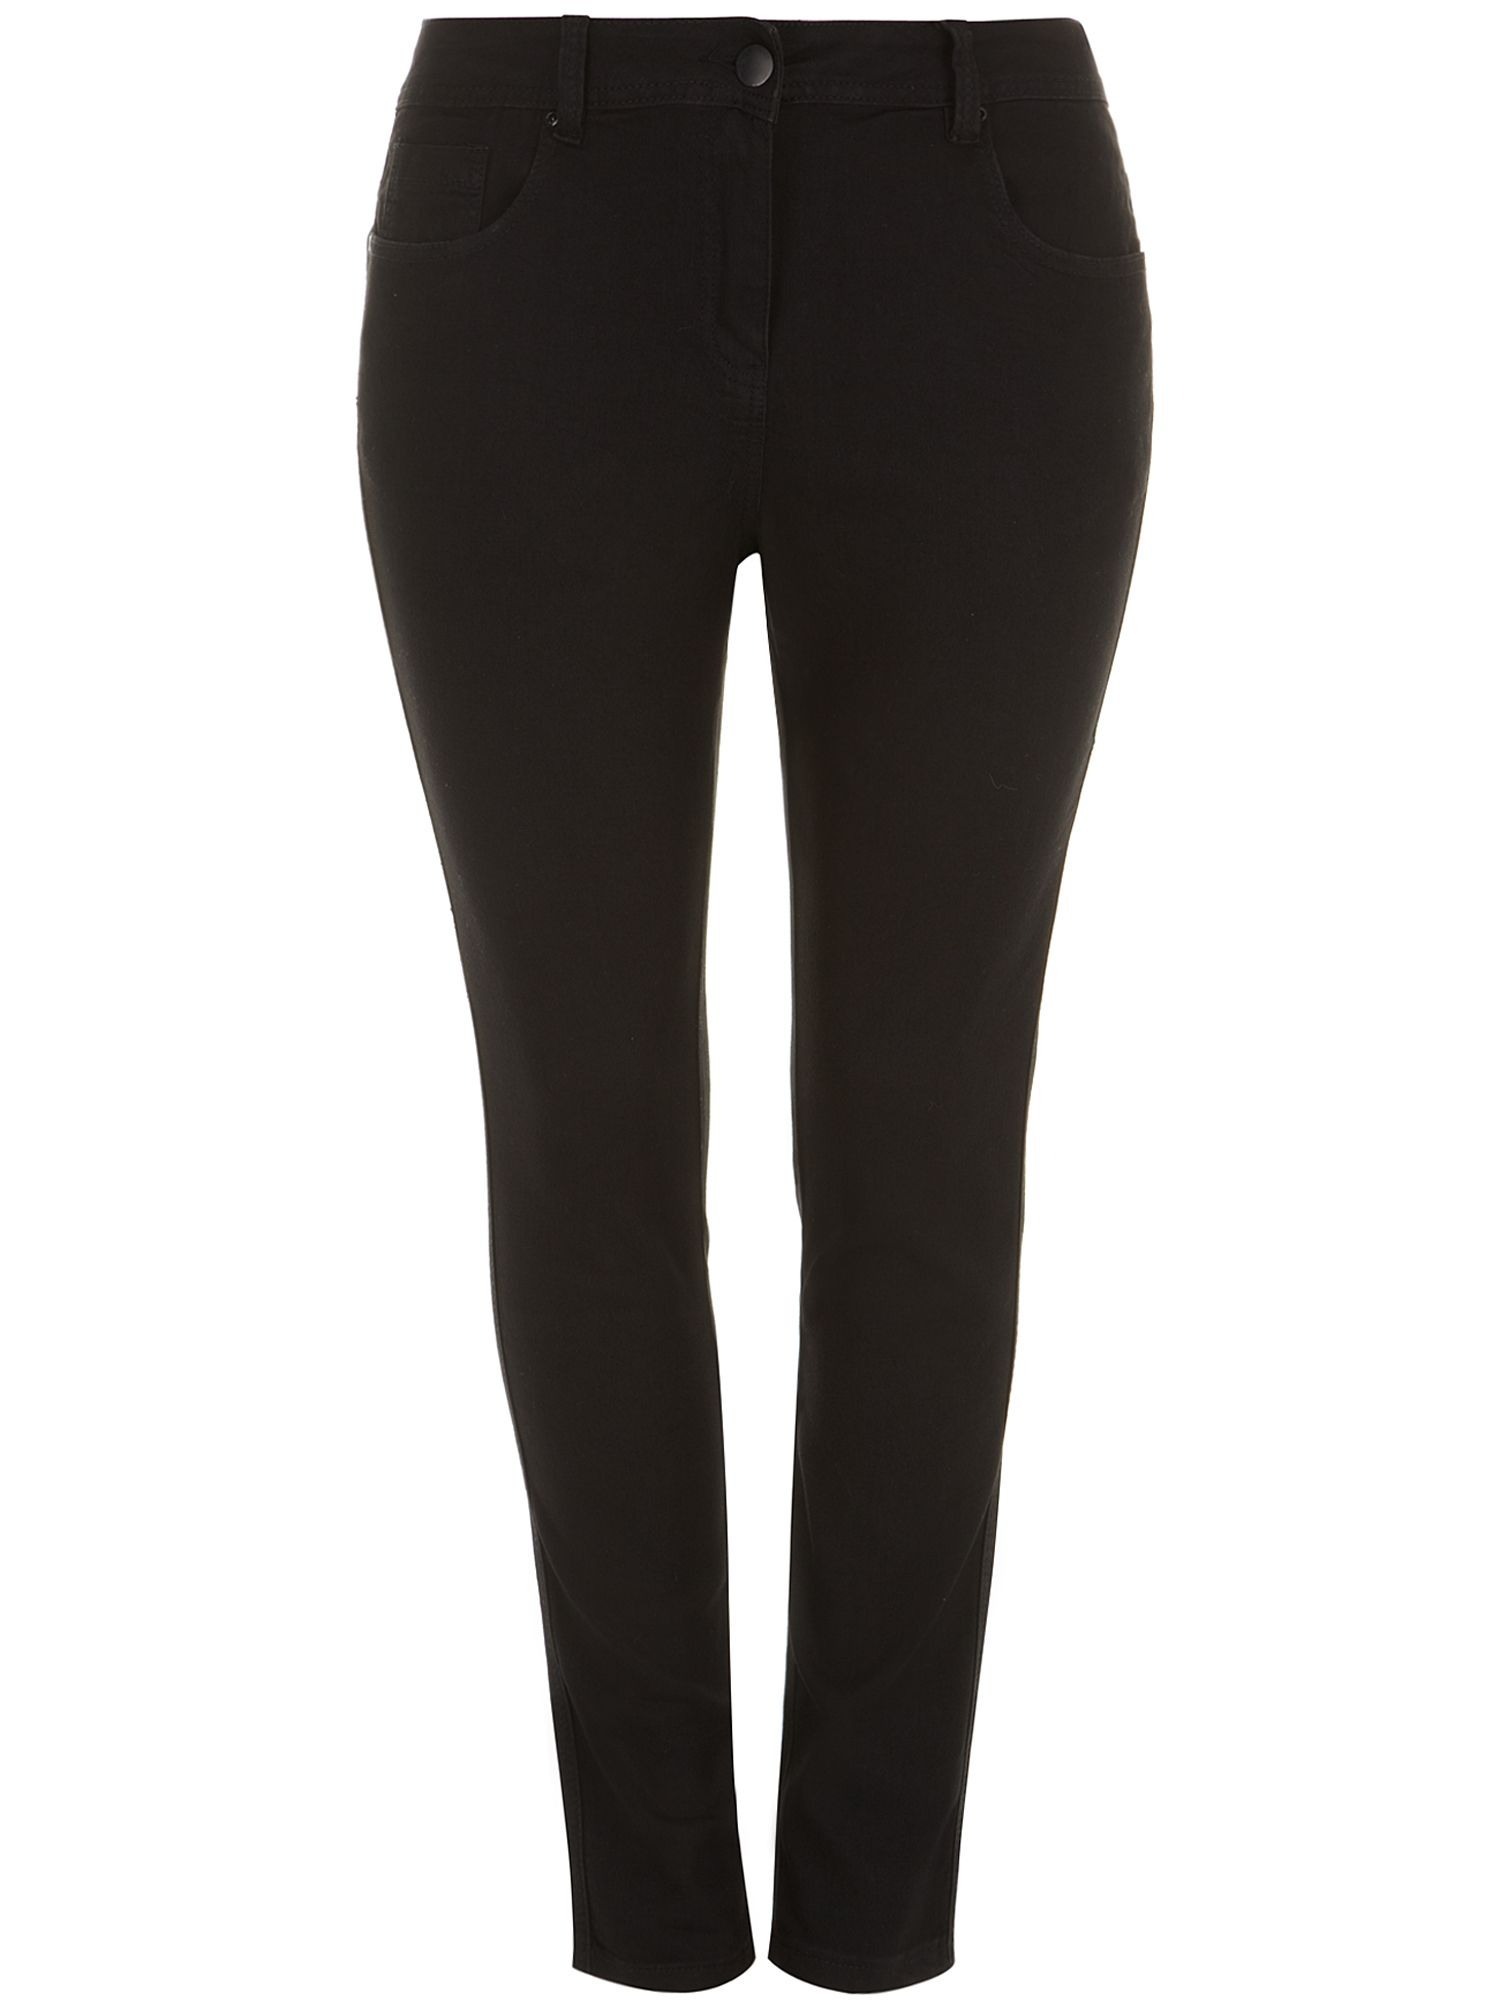 Black super stretch jeans